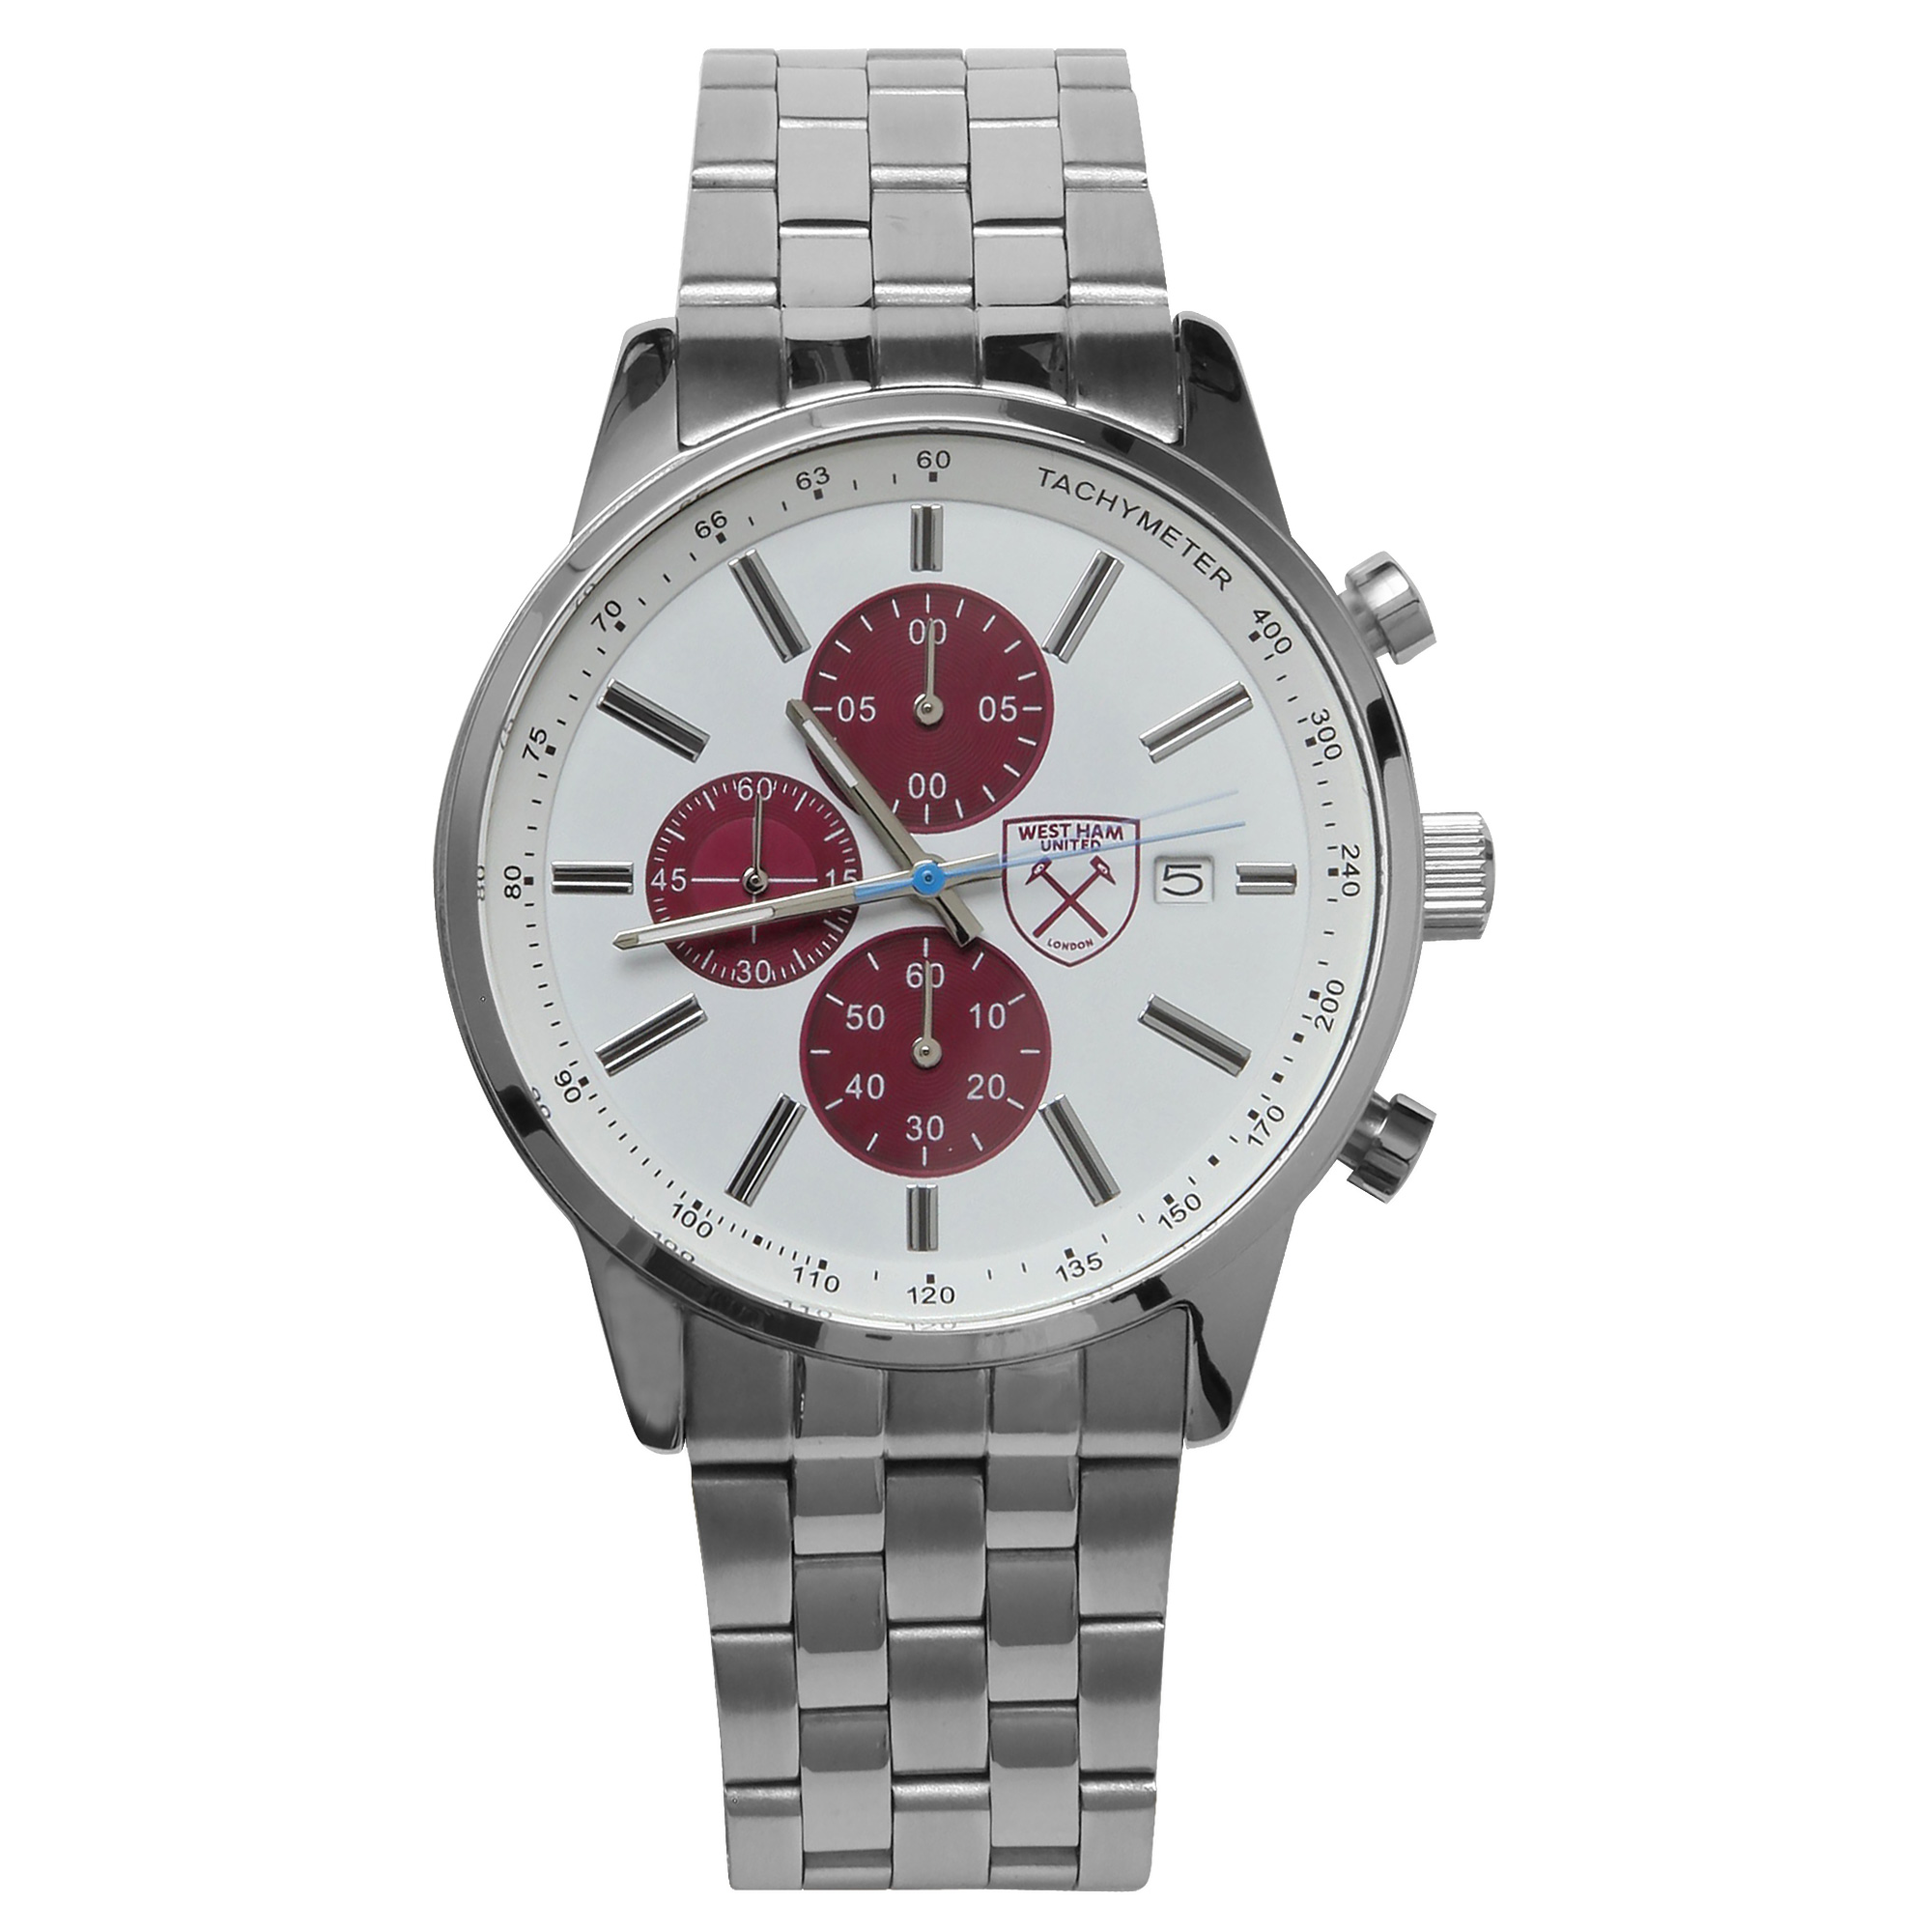 LIMITED EDITION SILVER BRACELET WATCH